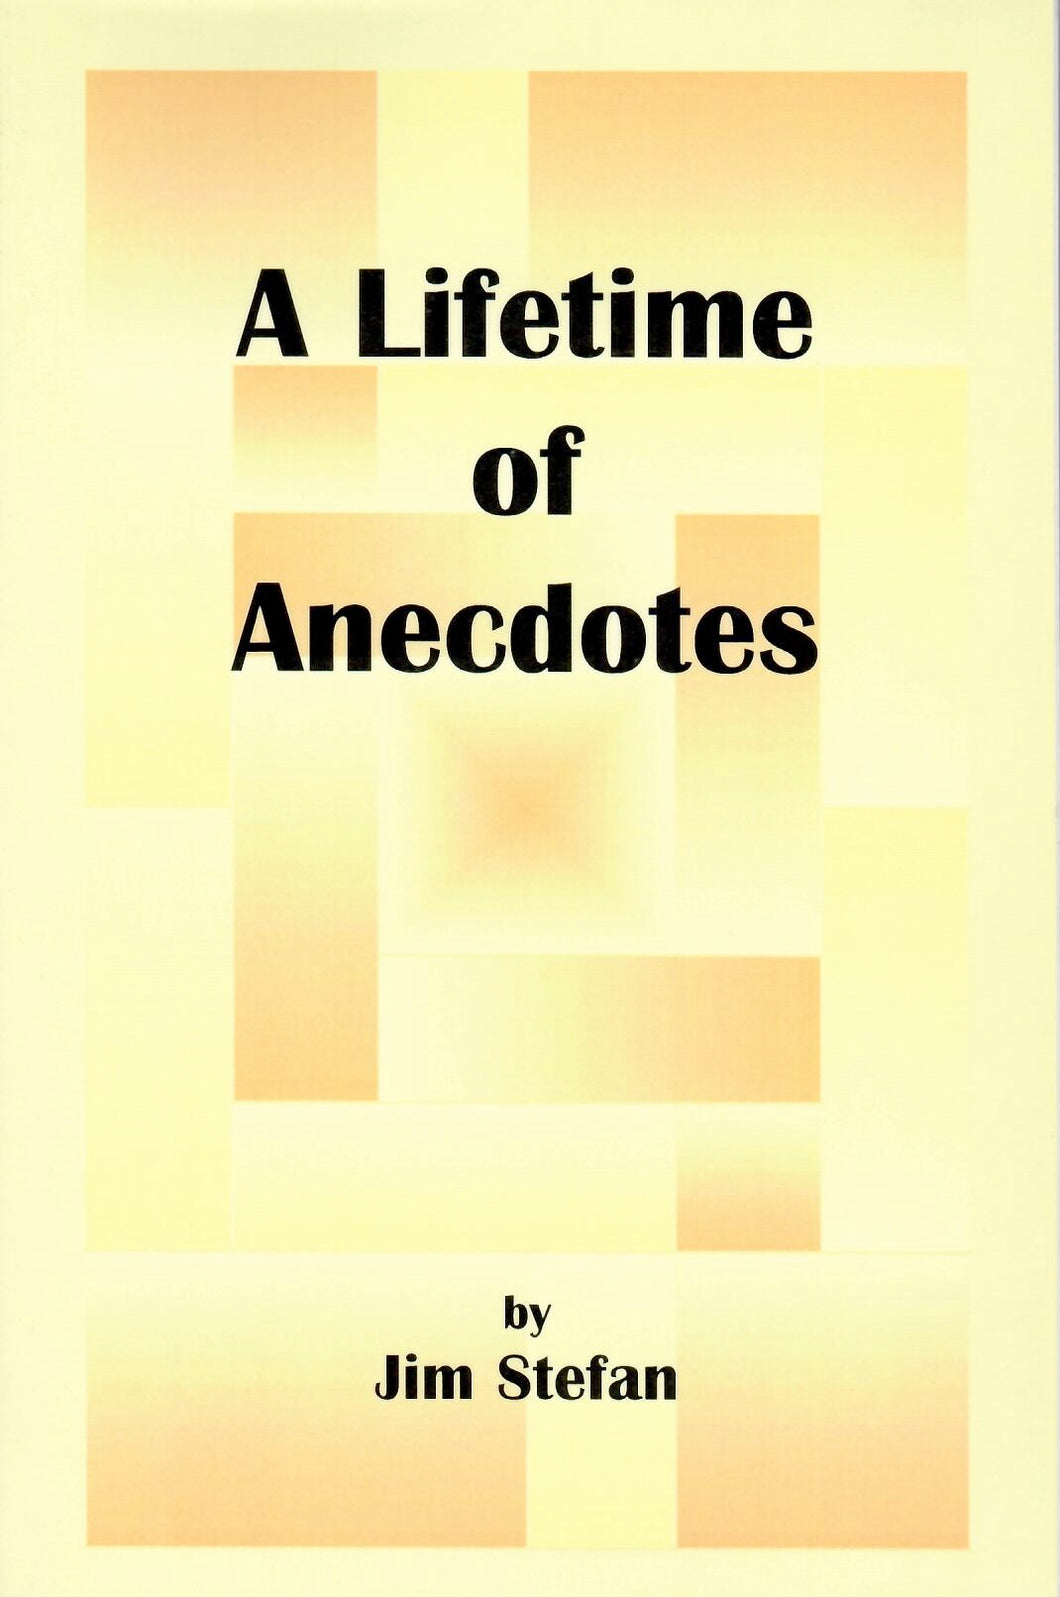 A Lifetime of Anecdotes